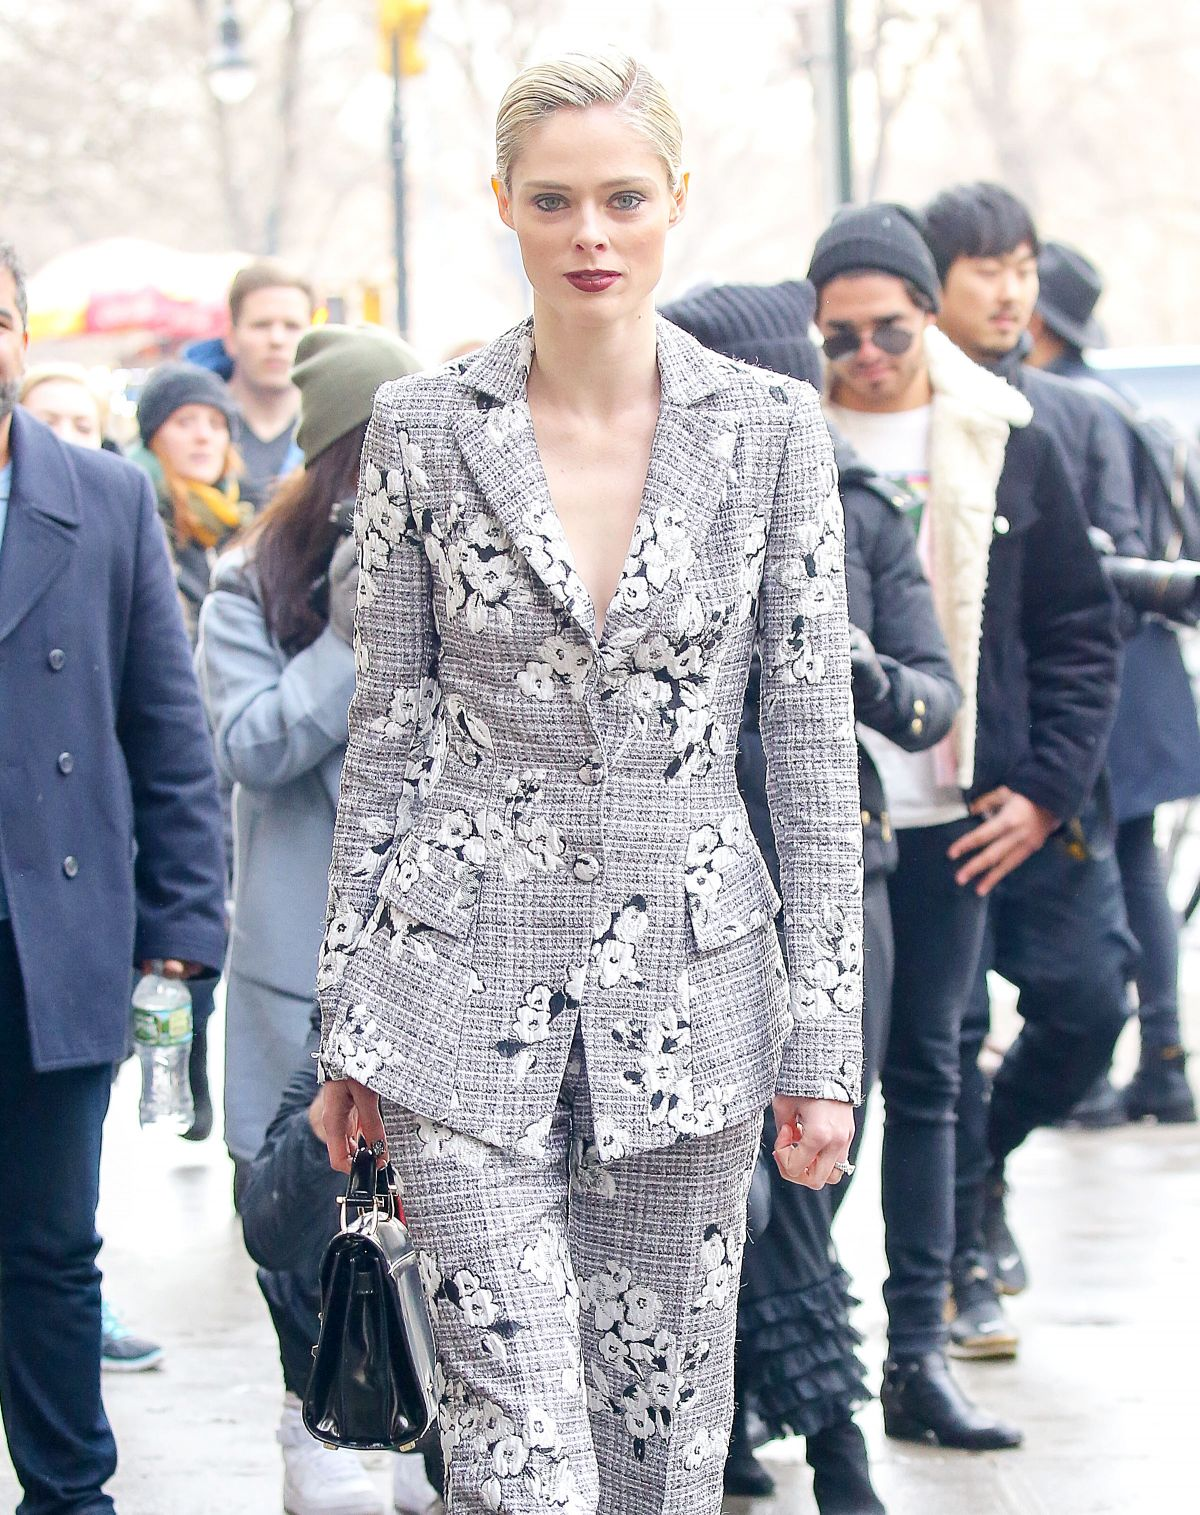 COCO ROCHA Arrives at Christian Siriano Fashion Show in New York 02/11/2017